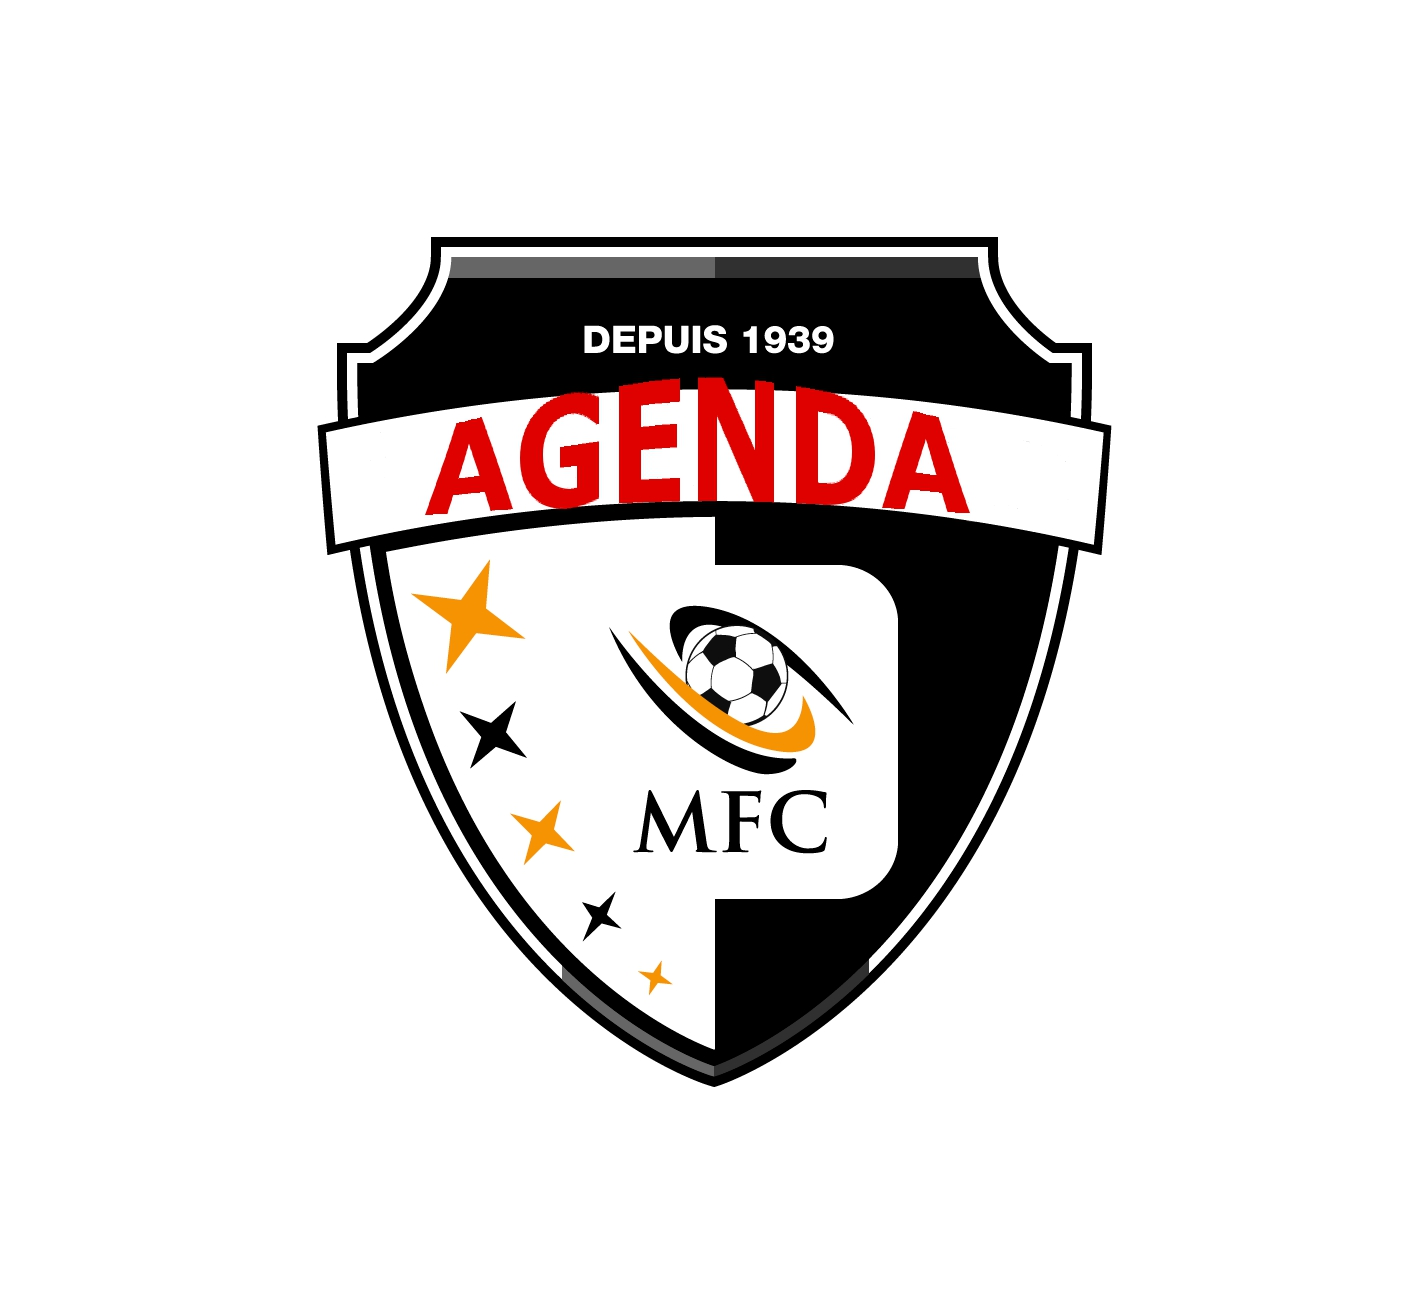 mfcagenda.jpeg